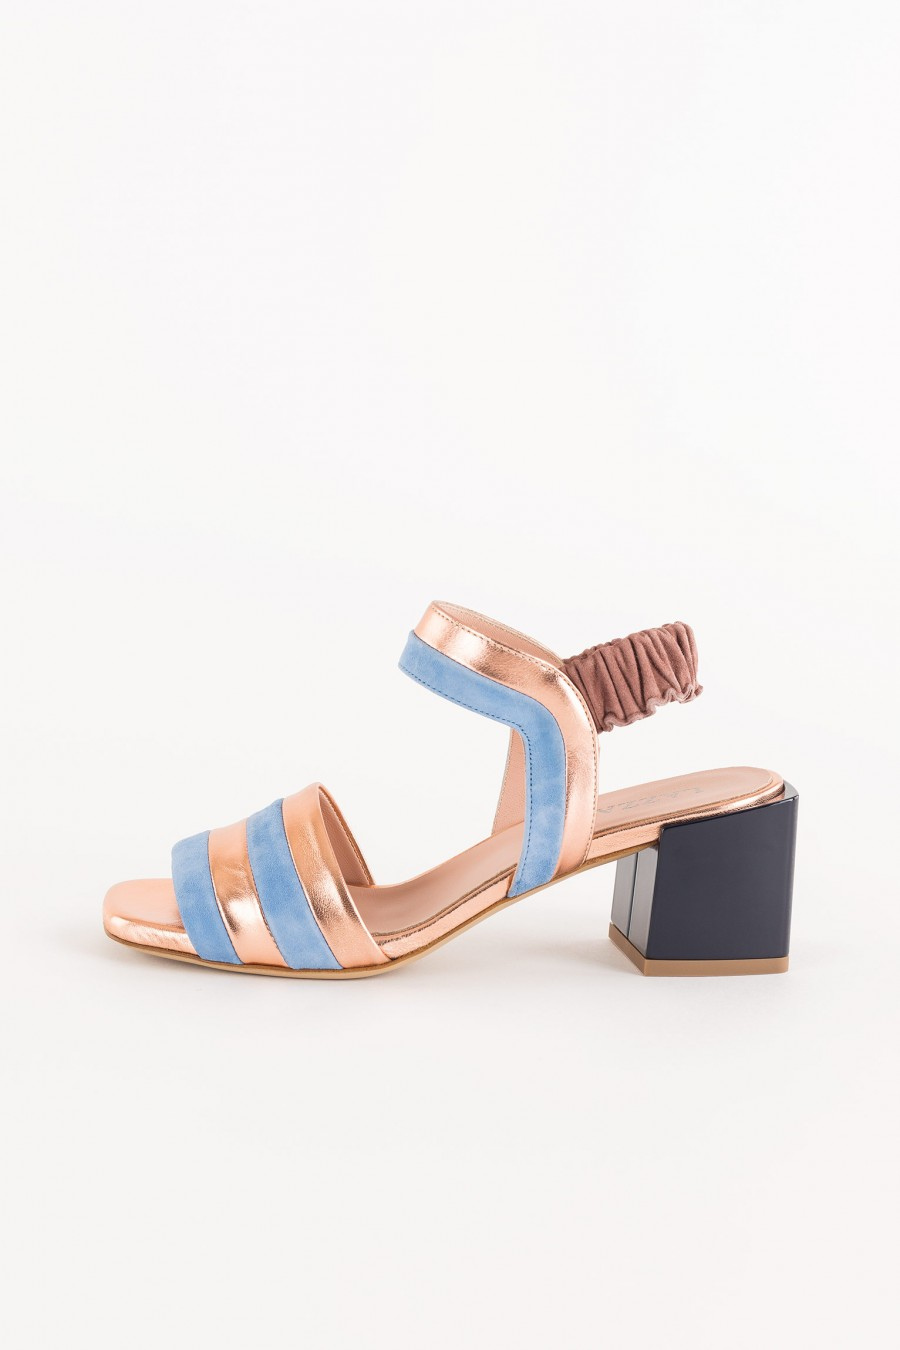 sandal with copper and light blue stripes